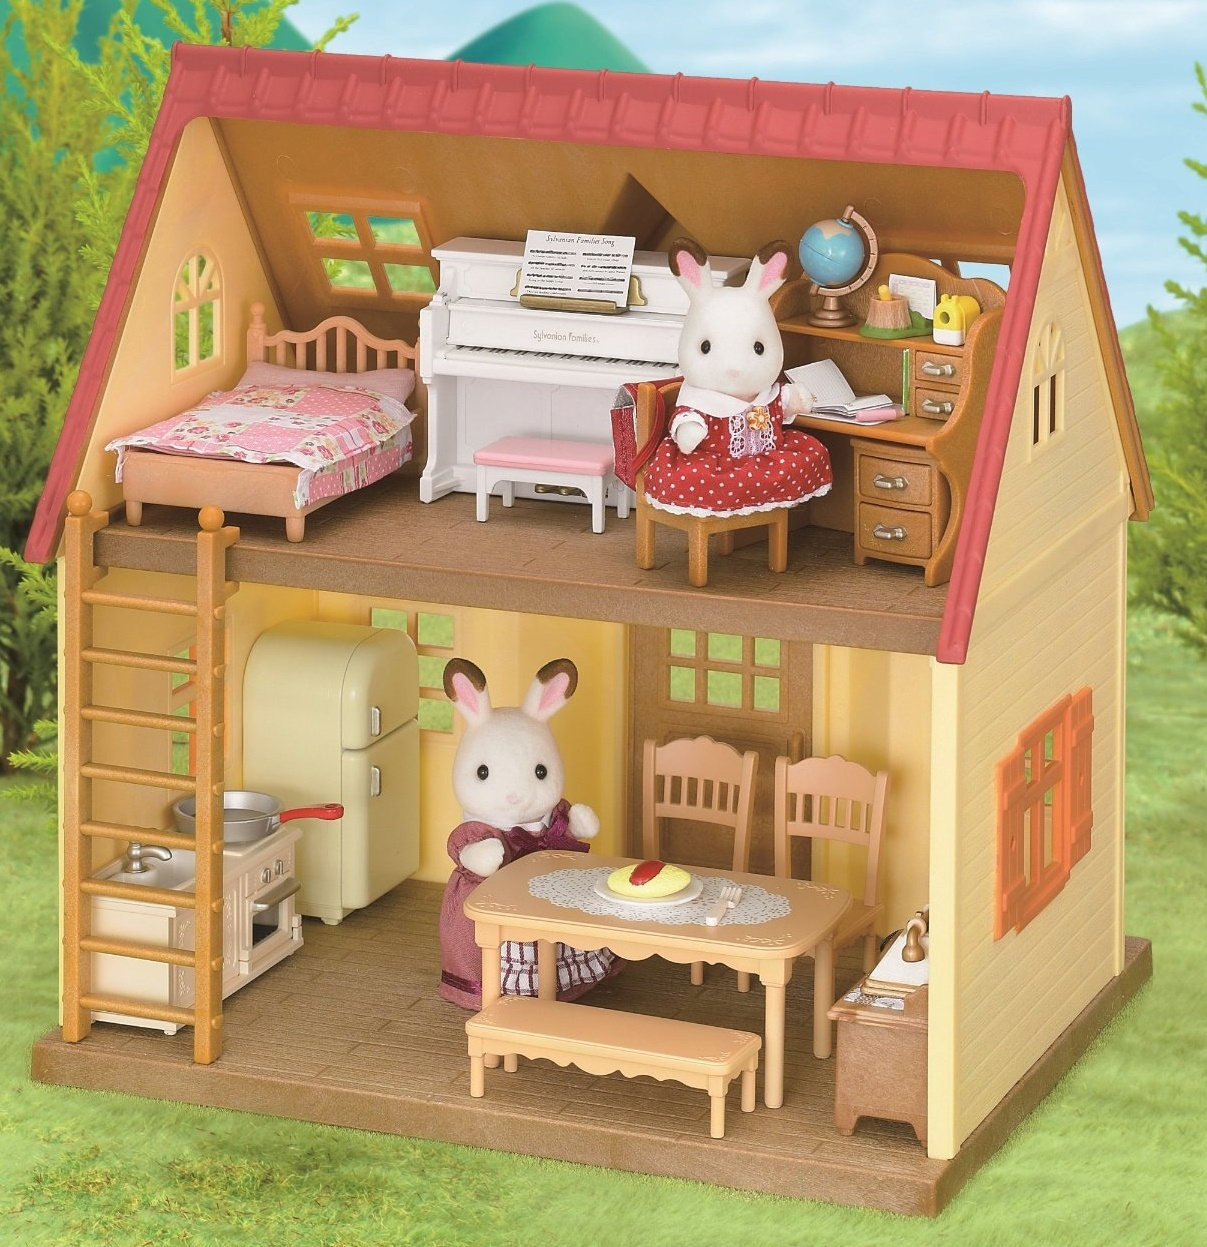 Sylvanian families classic furniture set toy at for Sylvanian classic furniture set